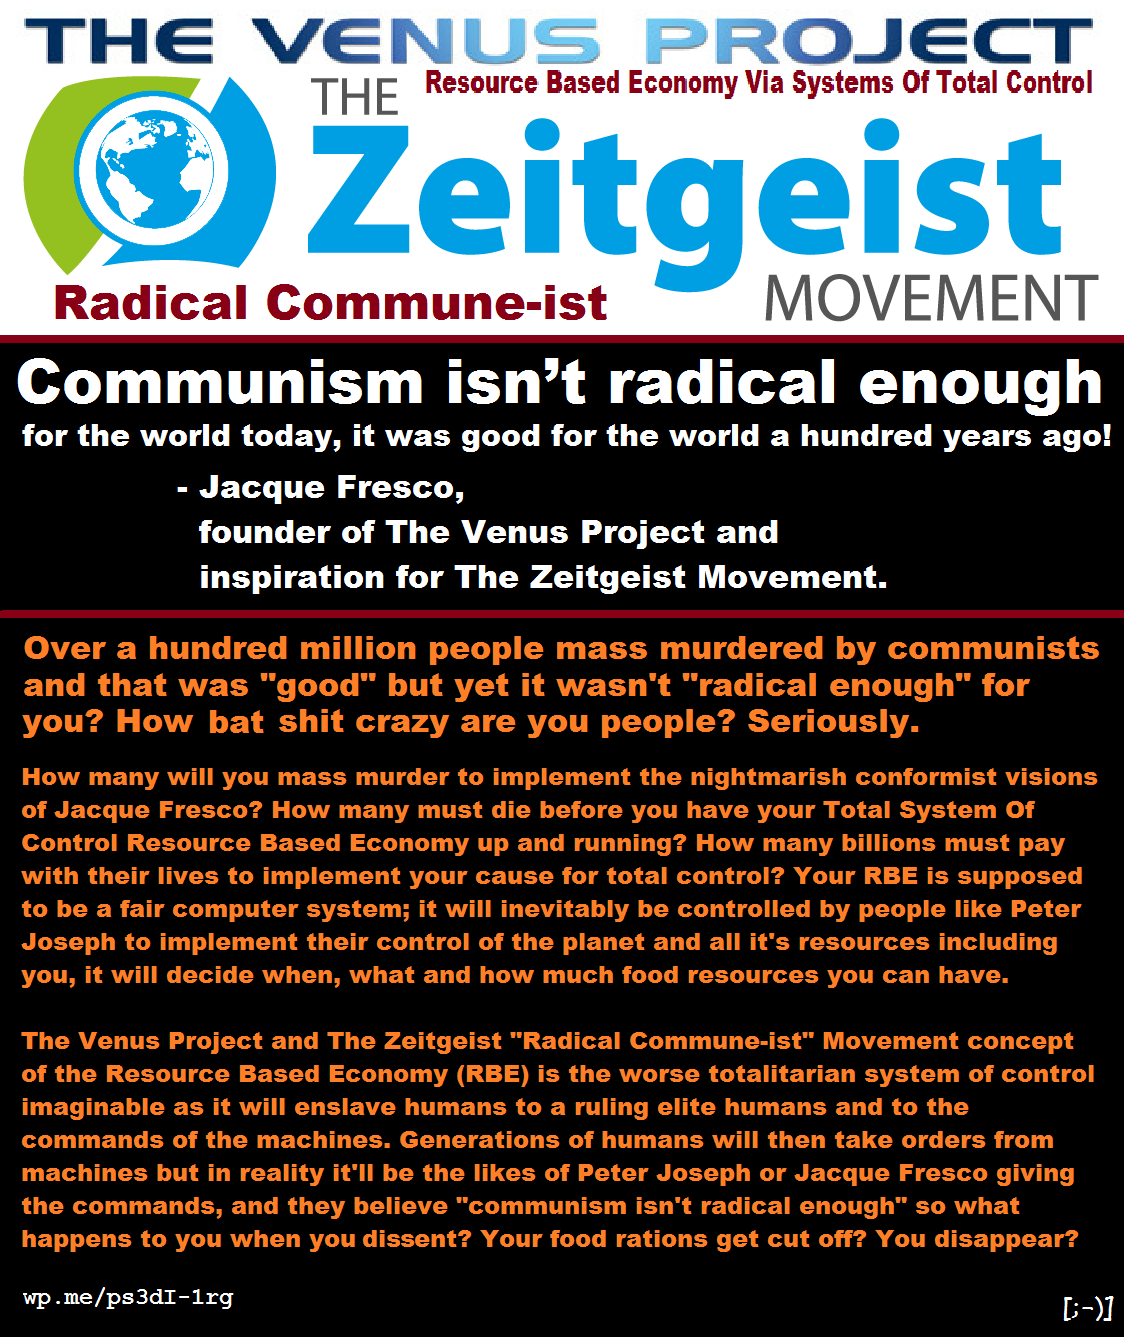 The Zeitgeist Radical Commune-ist Movement is evil